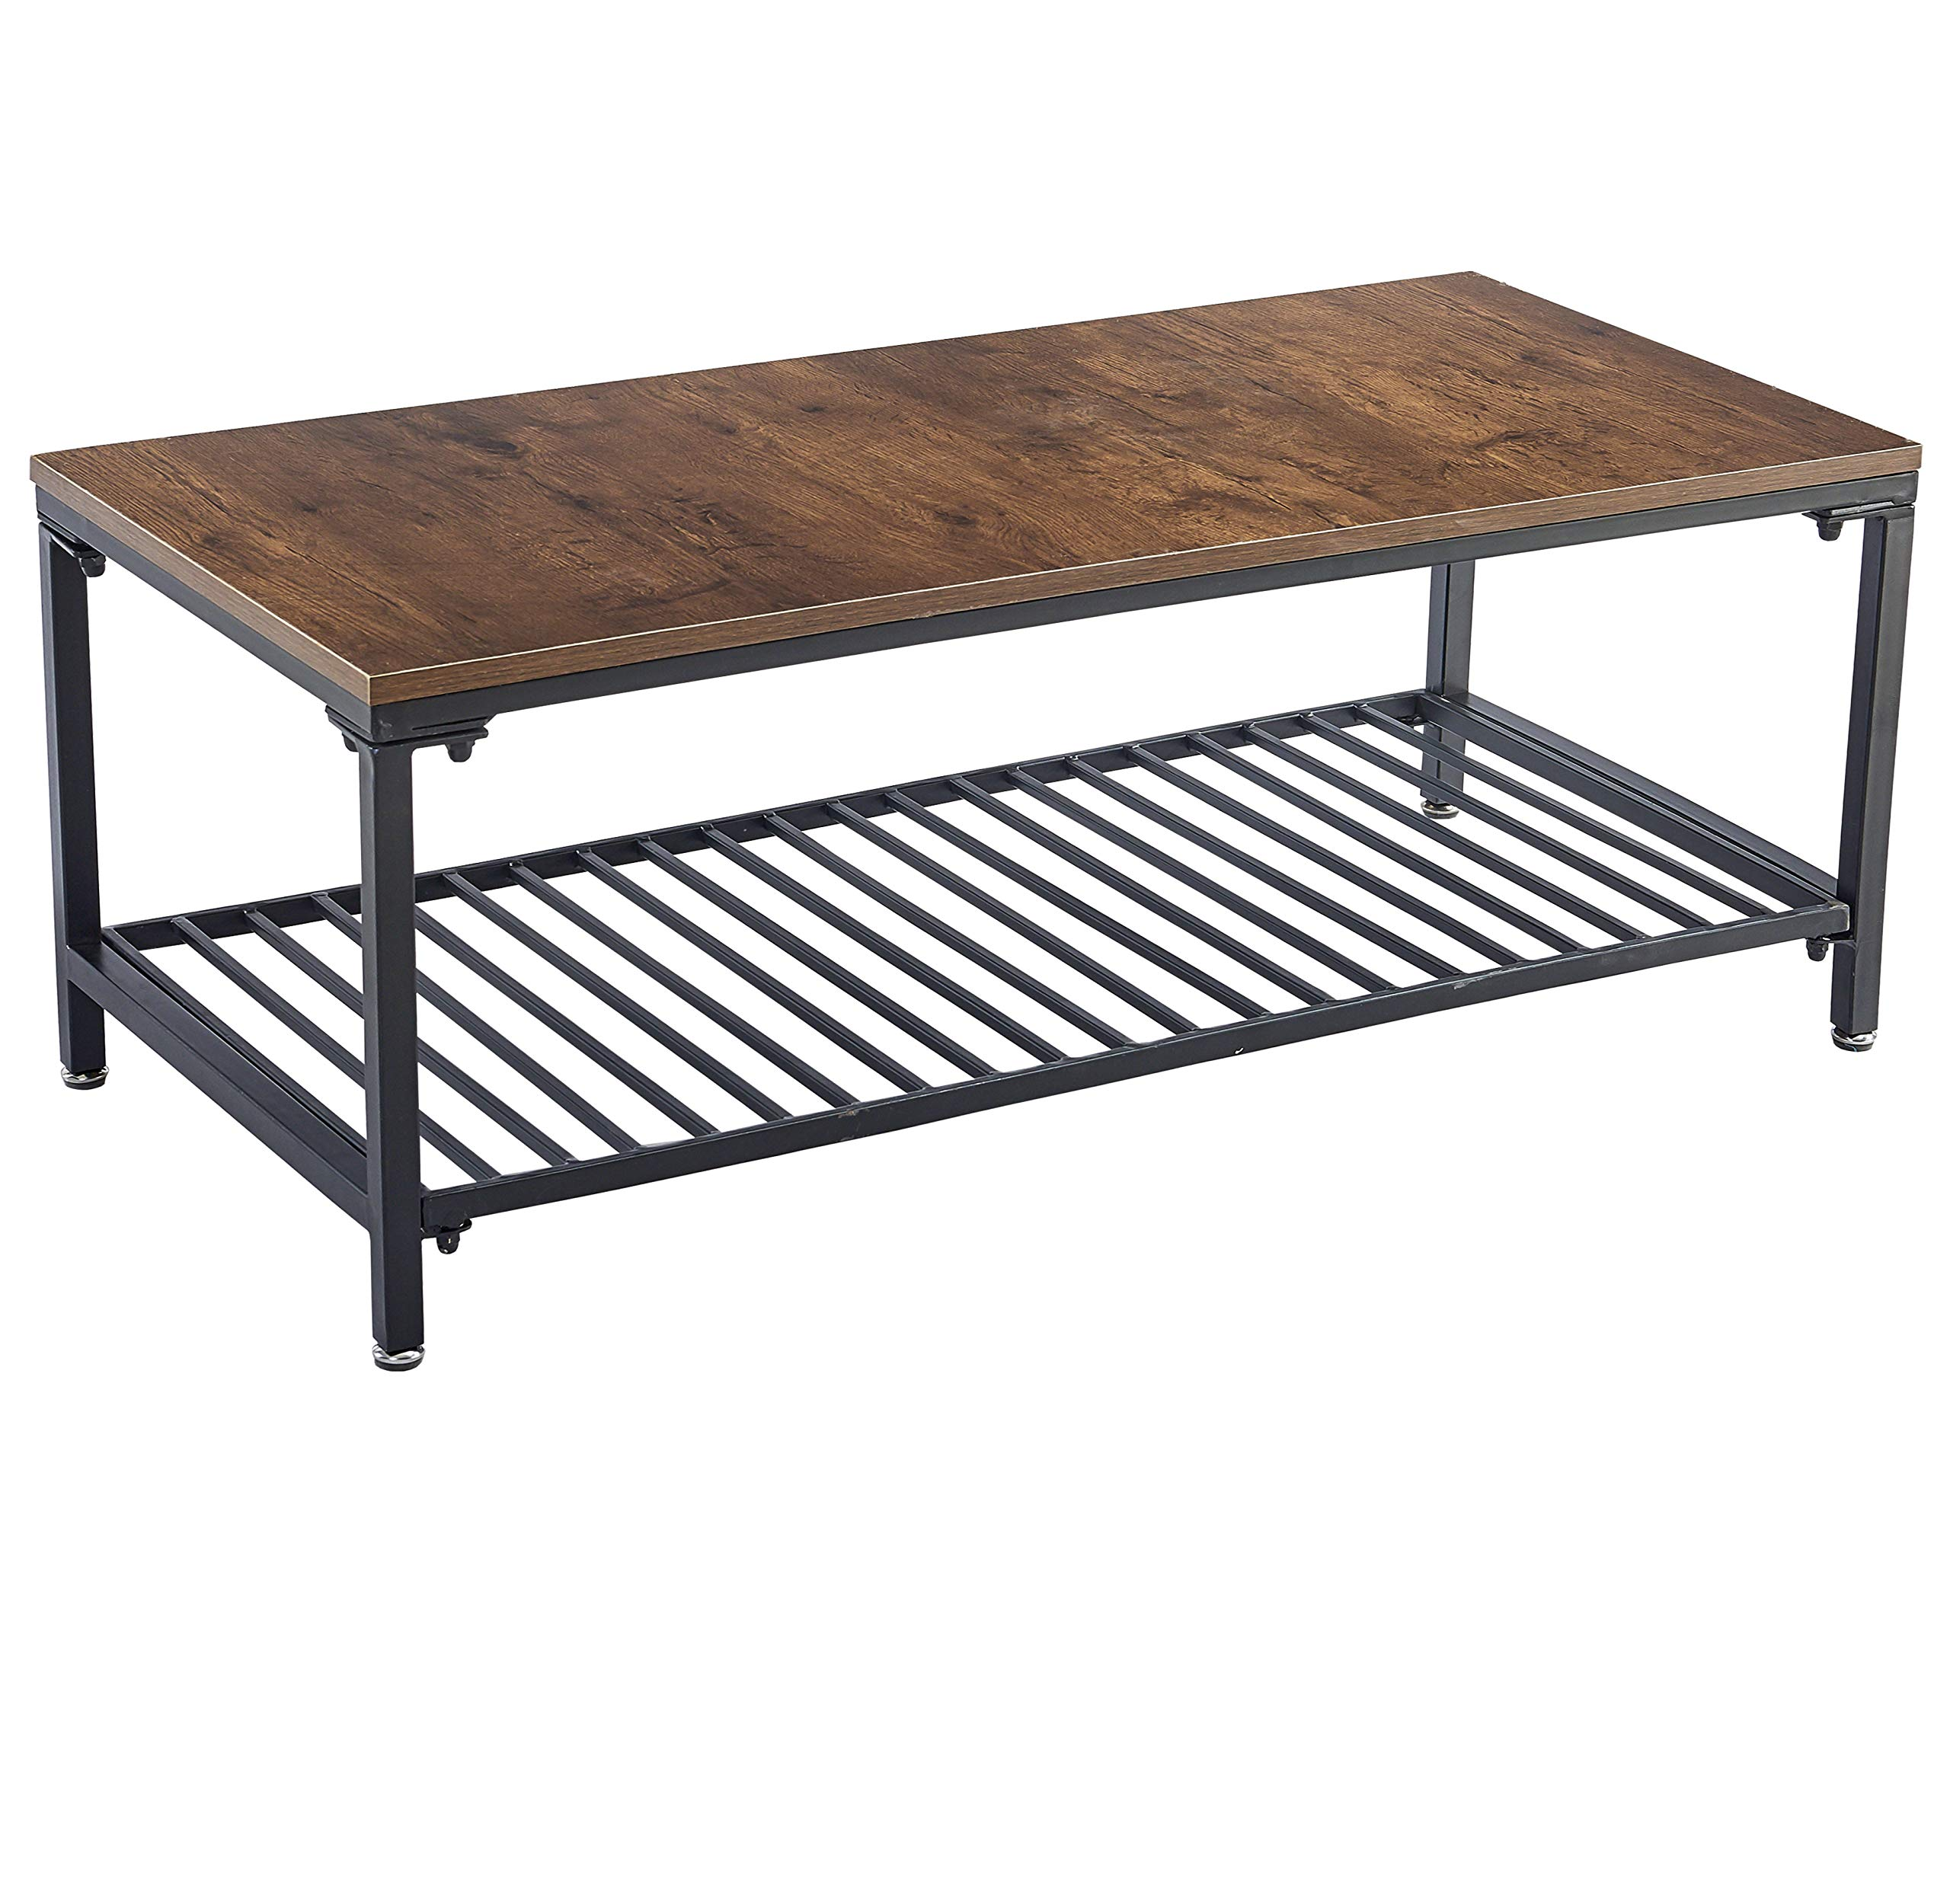 Loglus Coffee Table/Cocktail Table with Metal Shelf for Living Room,Easy Assembly -  - living-room-furniture, living-room, coffee-tables - 81VuLnYw%2BHL -